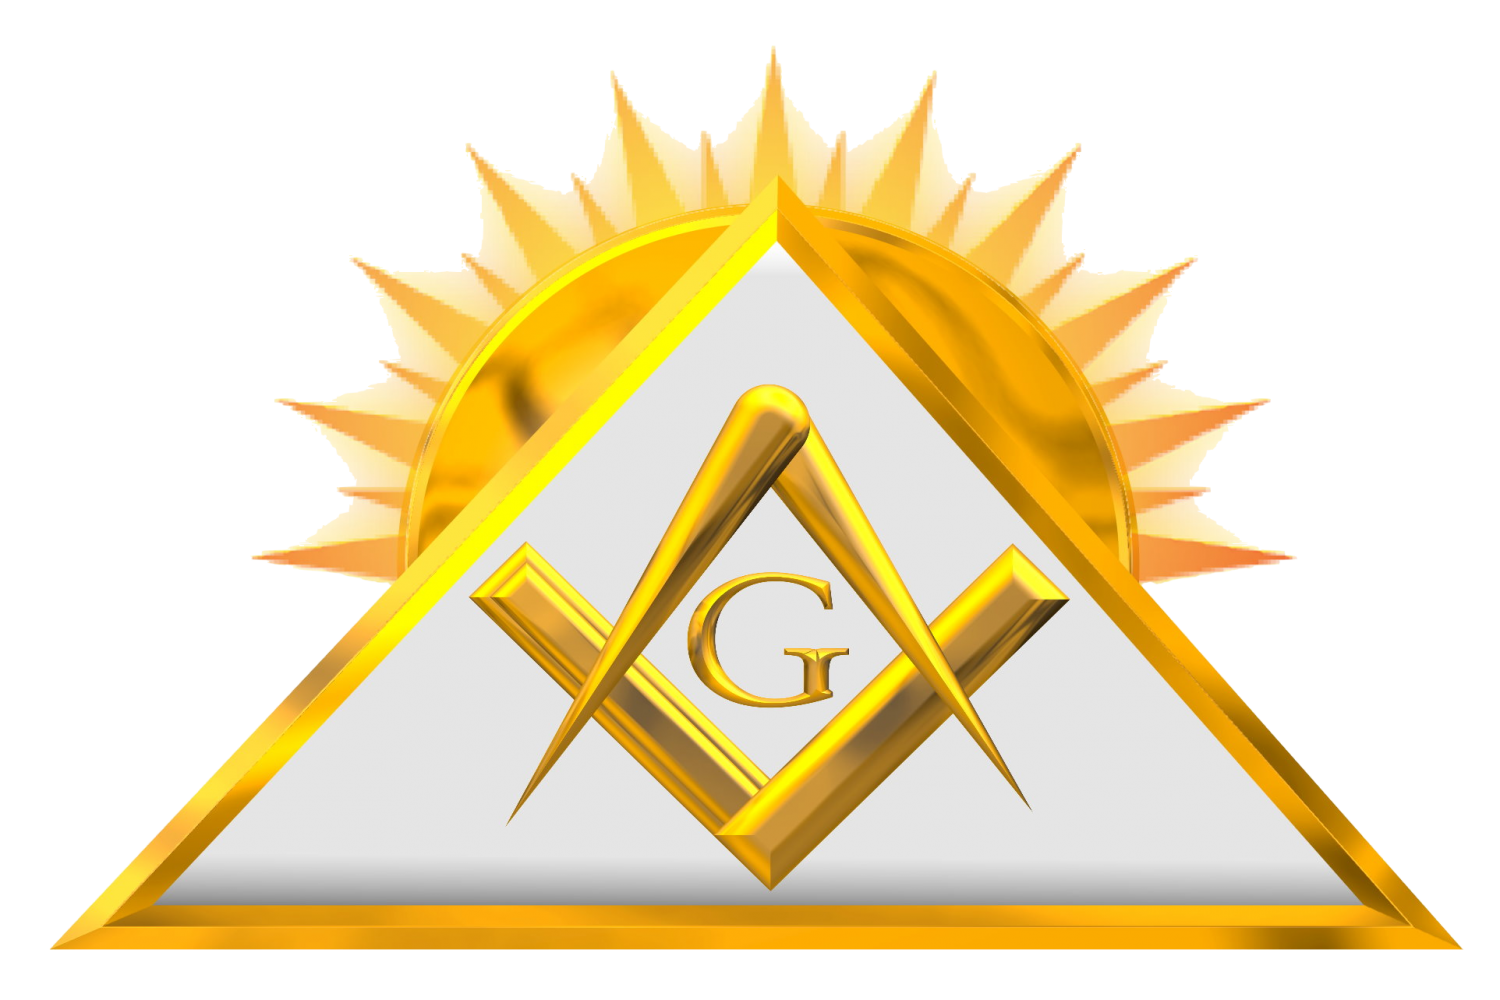 Order of eastern star clipart svg free library www.masonic-art.co.uk svg free library